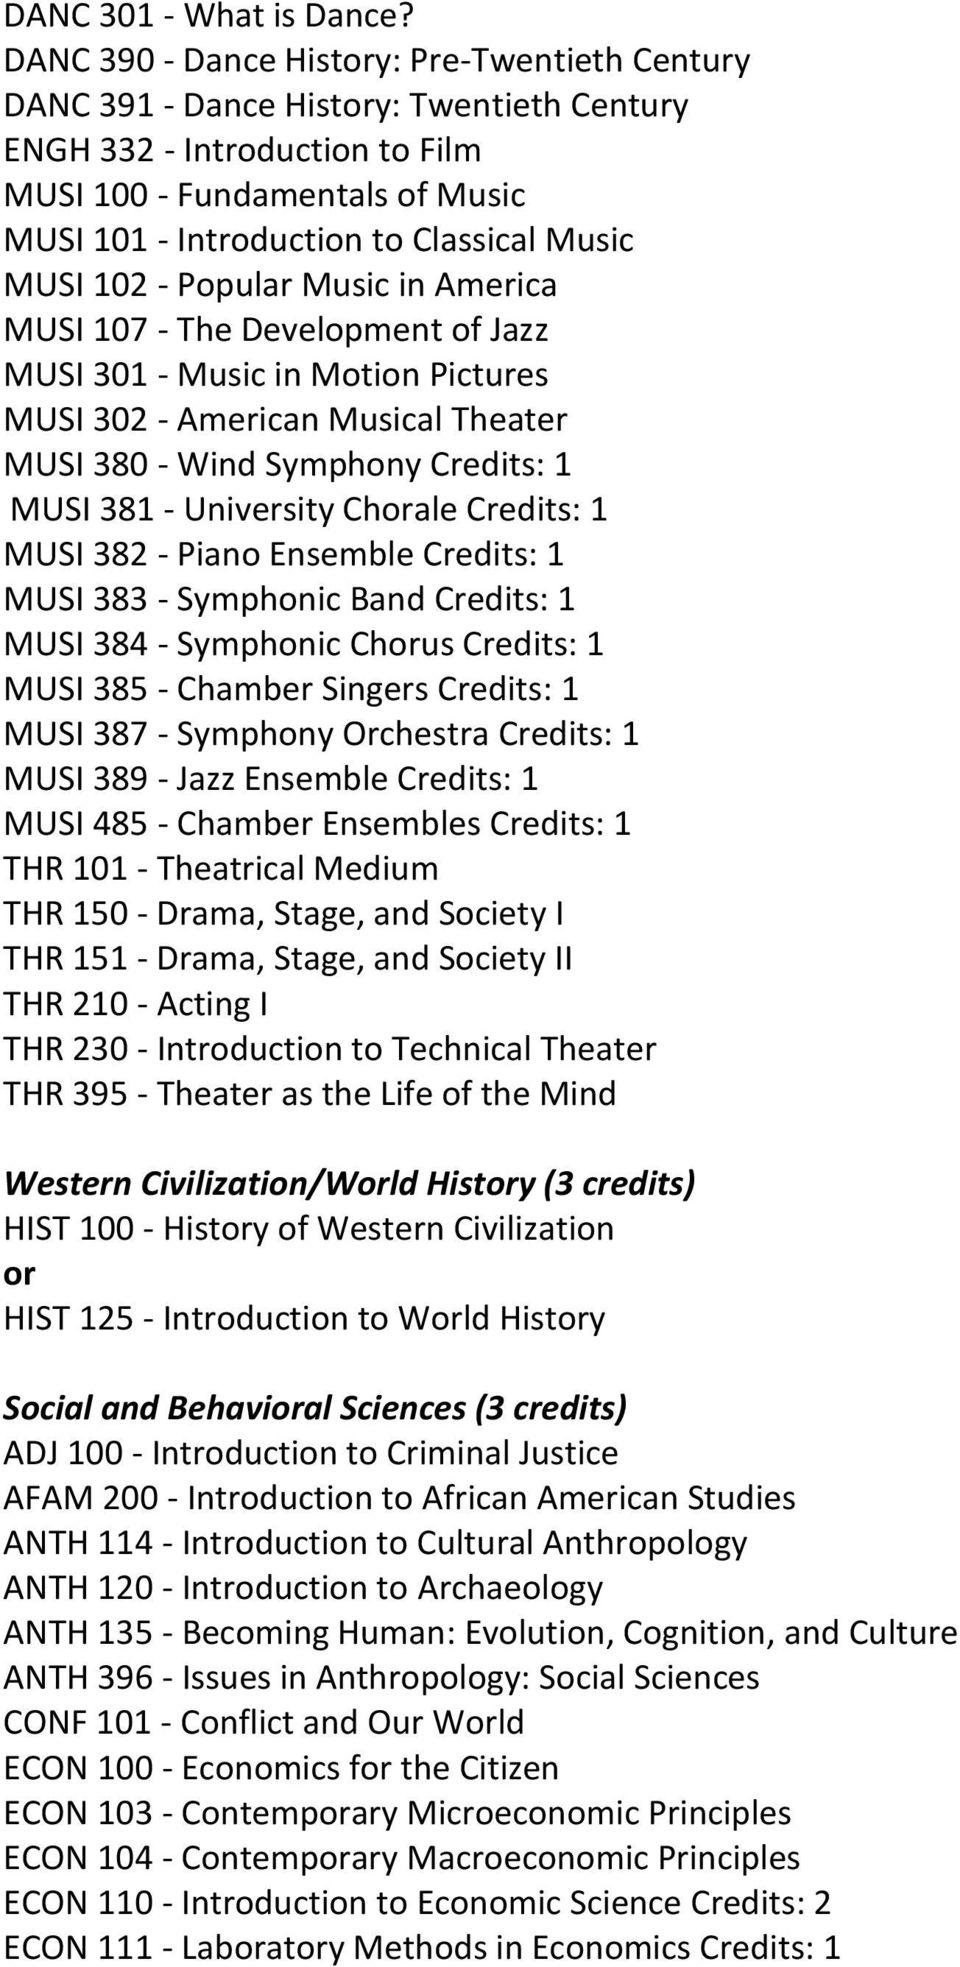 MUSI 102 - Popular Music in America MUSI 107 - The Development of Jazz MUSI 301 - Music in Motion Pictures MUSI 302 - American Musical Theater MUSI 380 - Wind Symphony Credits: 1 MUSI 381 -